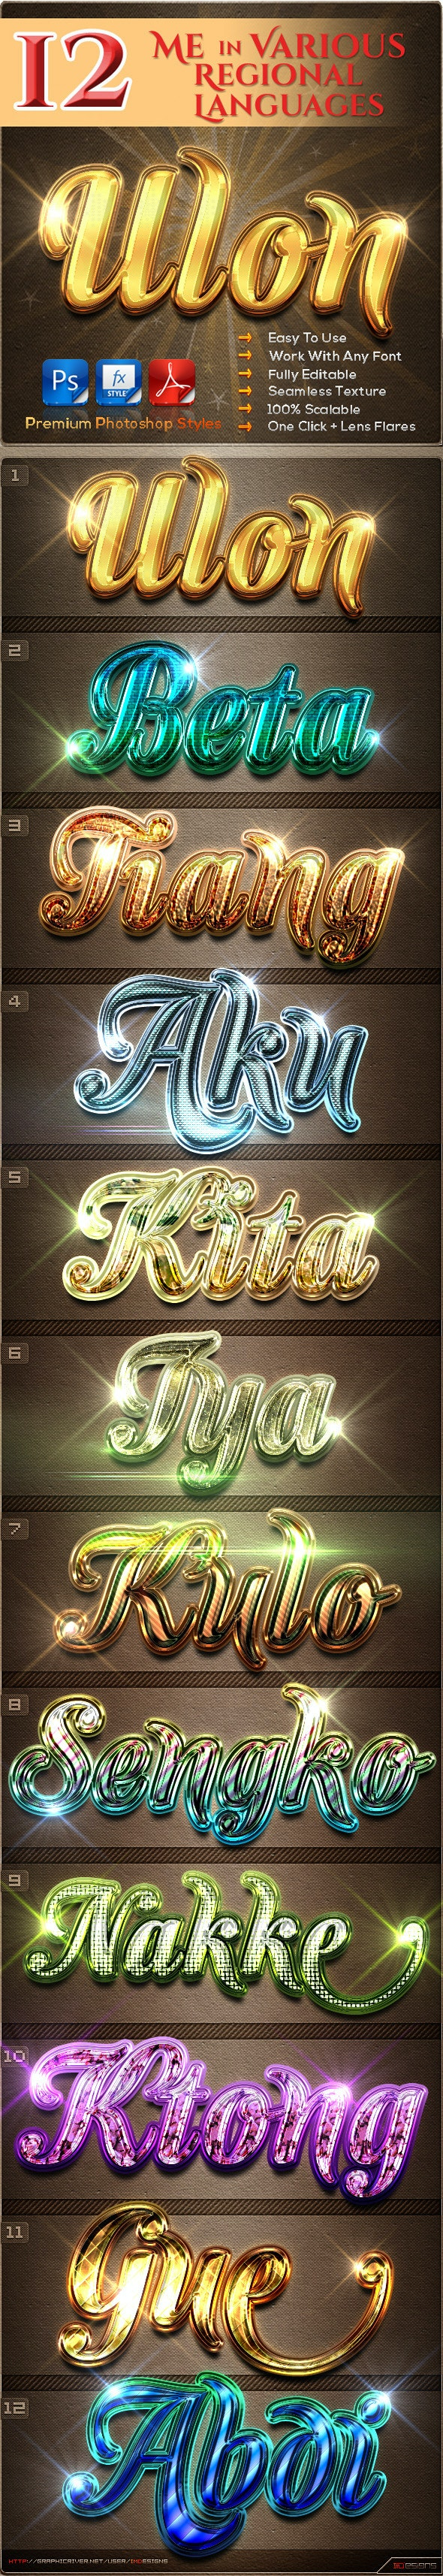 12 Me in Various Regional Languages - Text Effects Styles